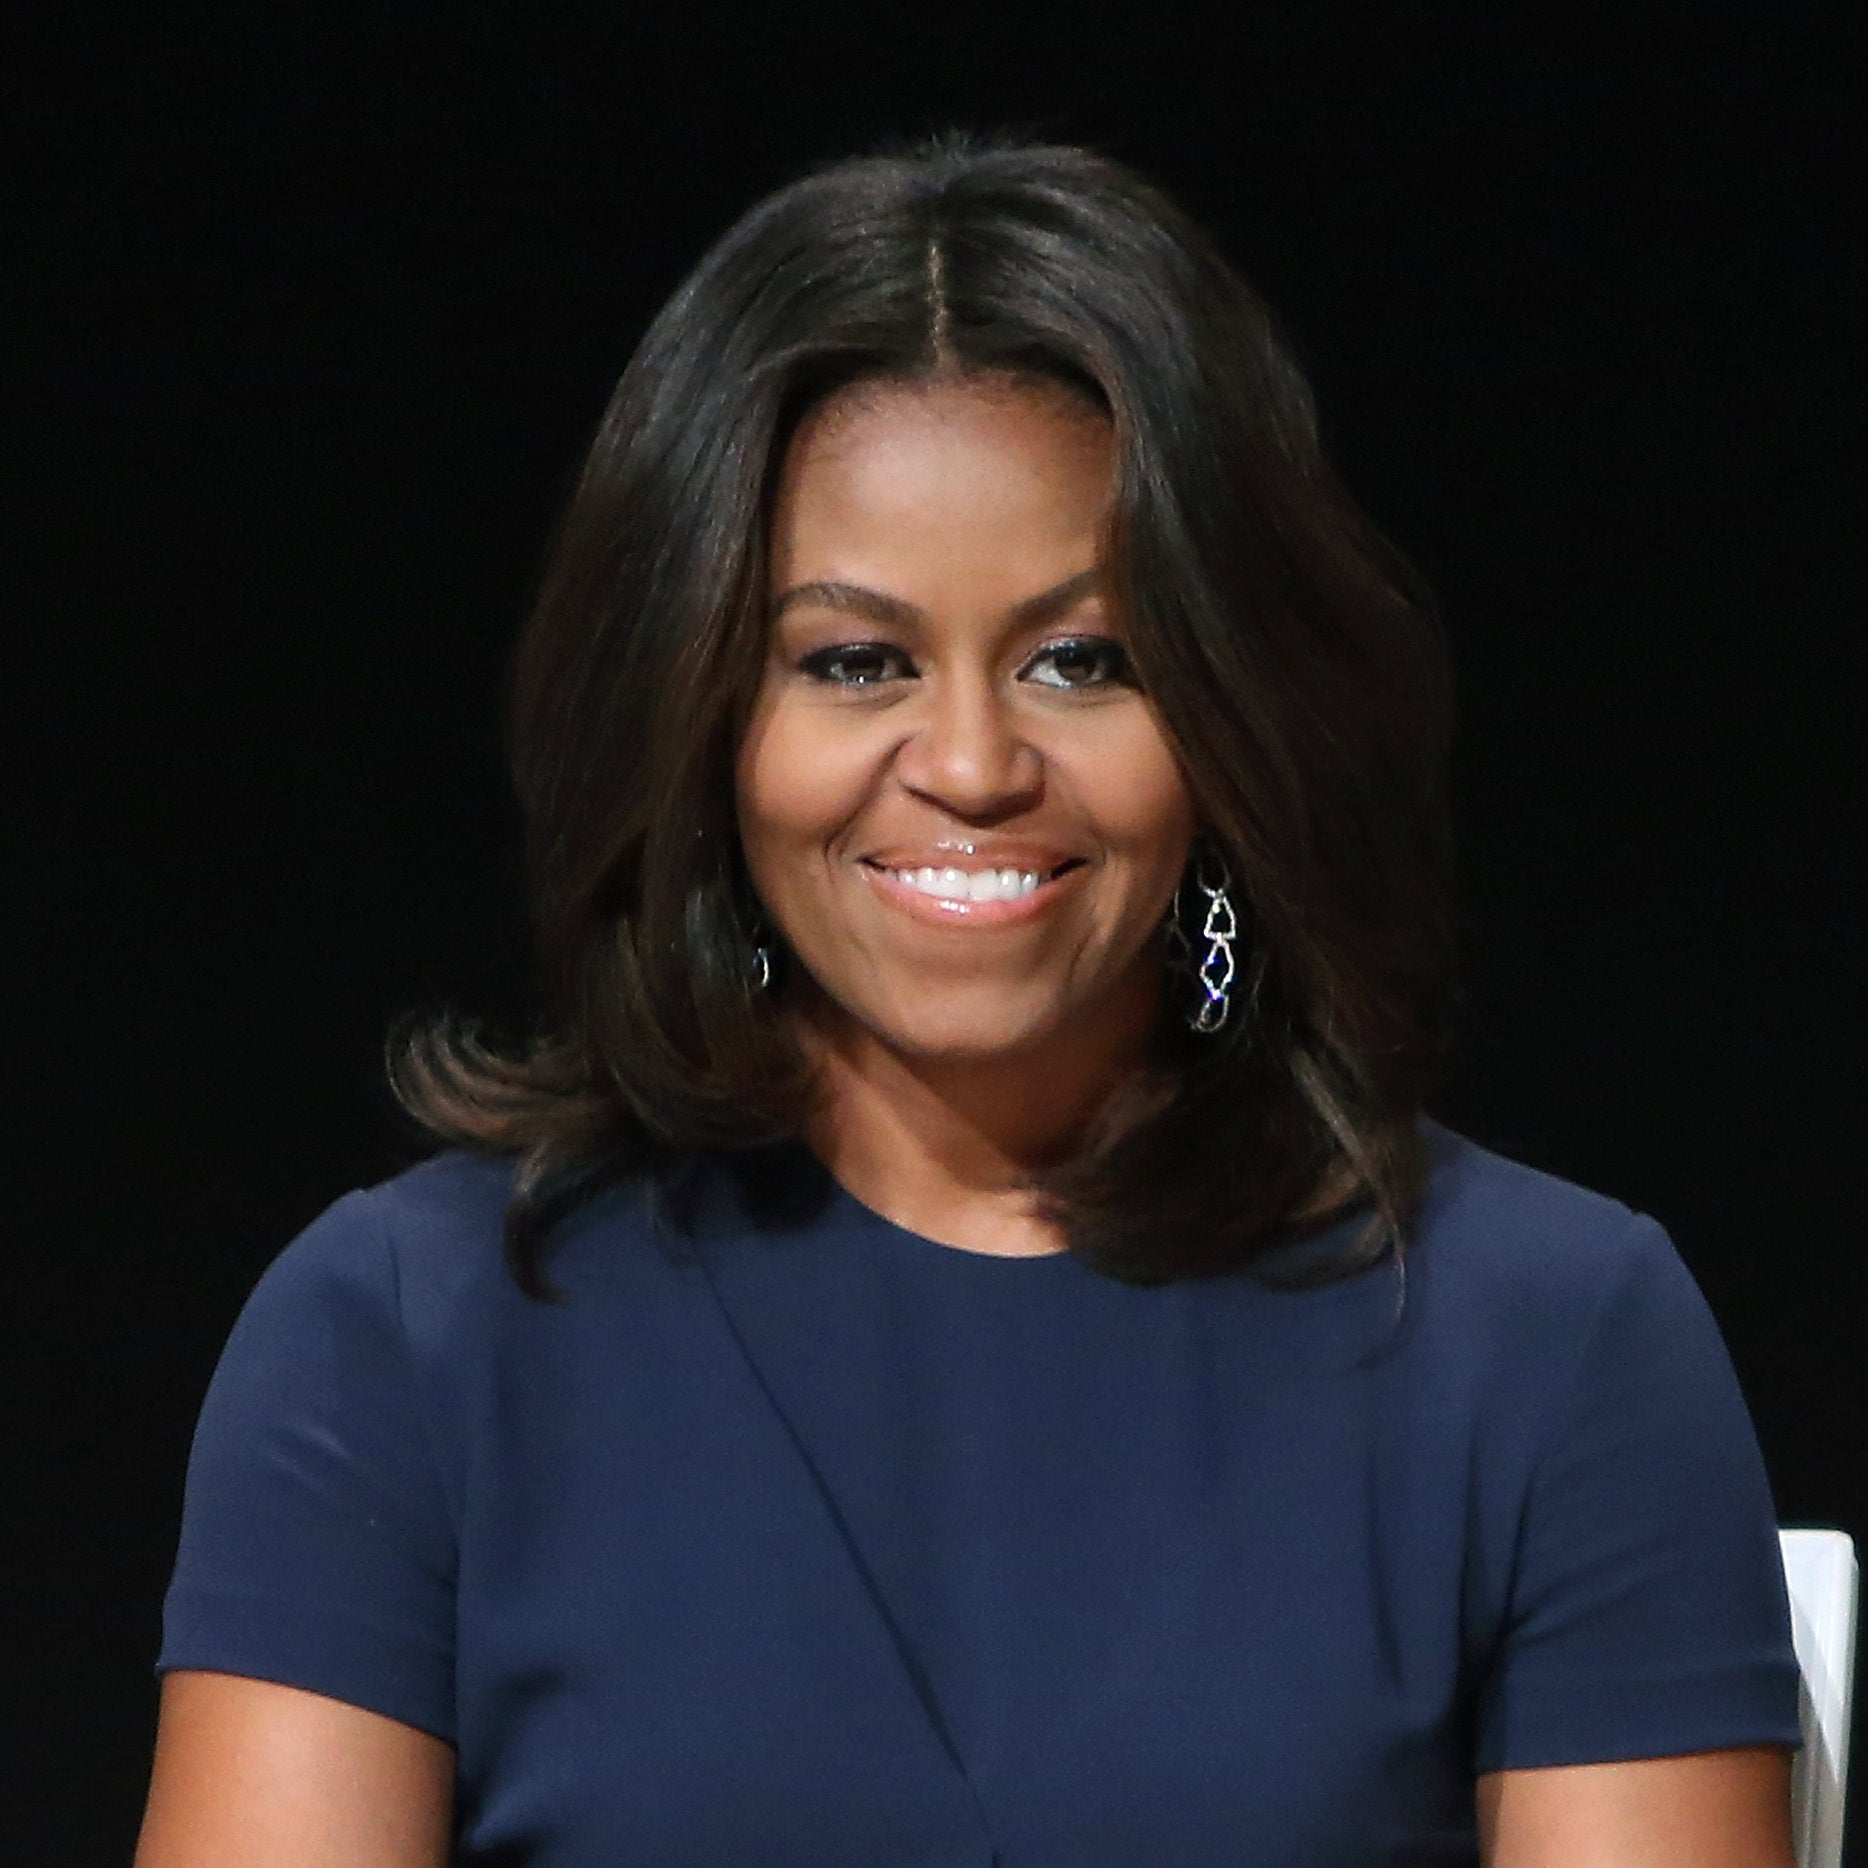 Michelle Obama Won't Run For President And It's Time We Support Her Wish